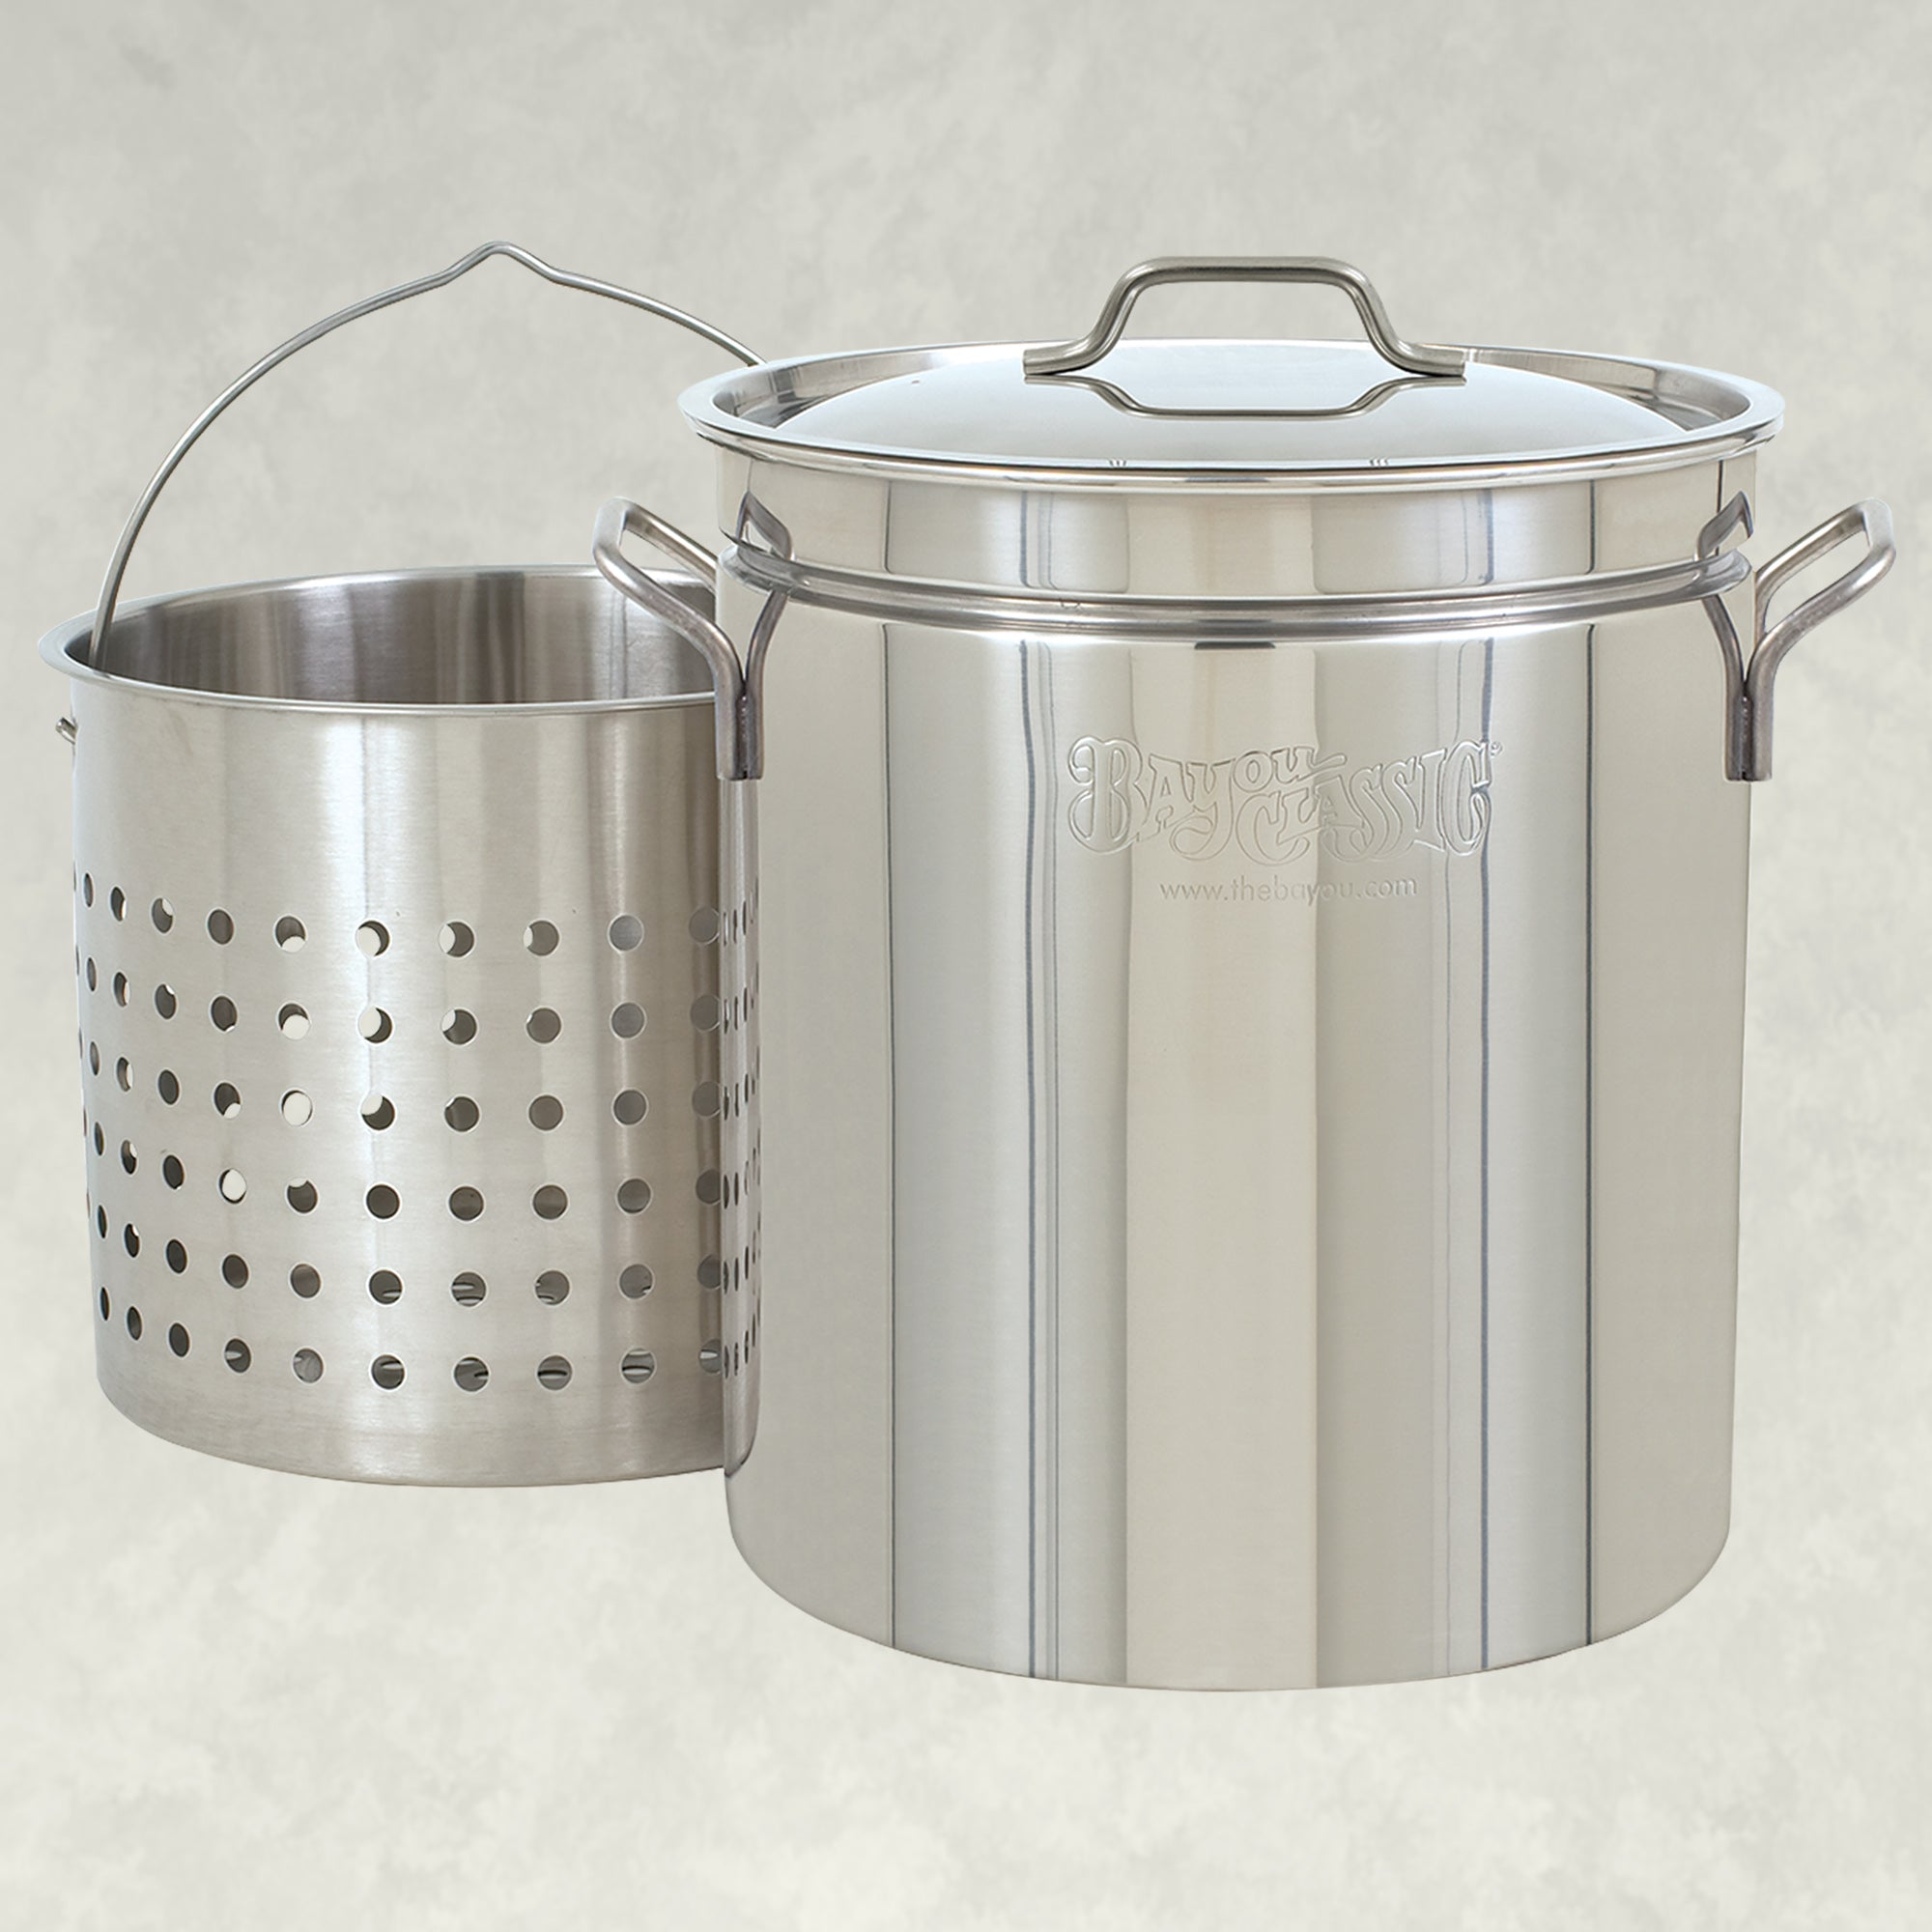 62-qt Stainless Stockpot with Basket